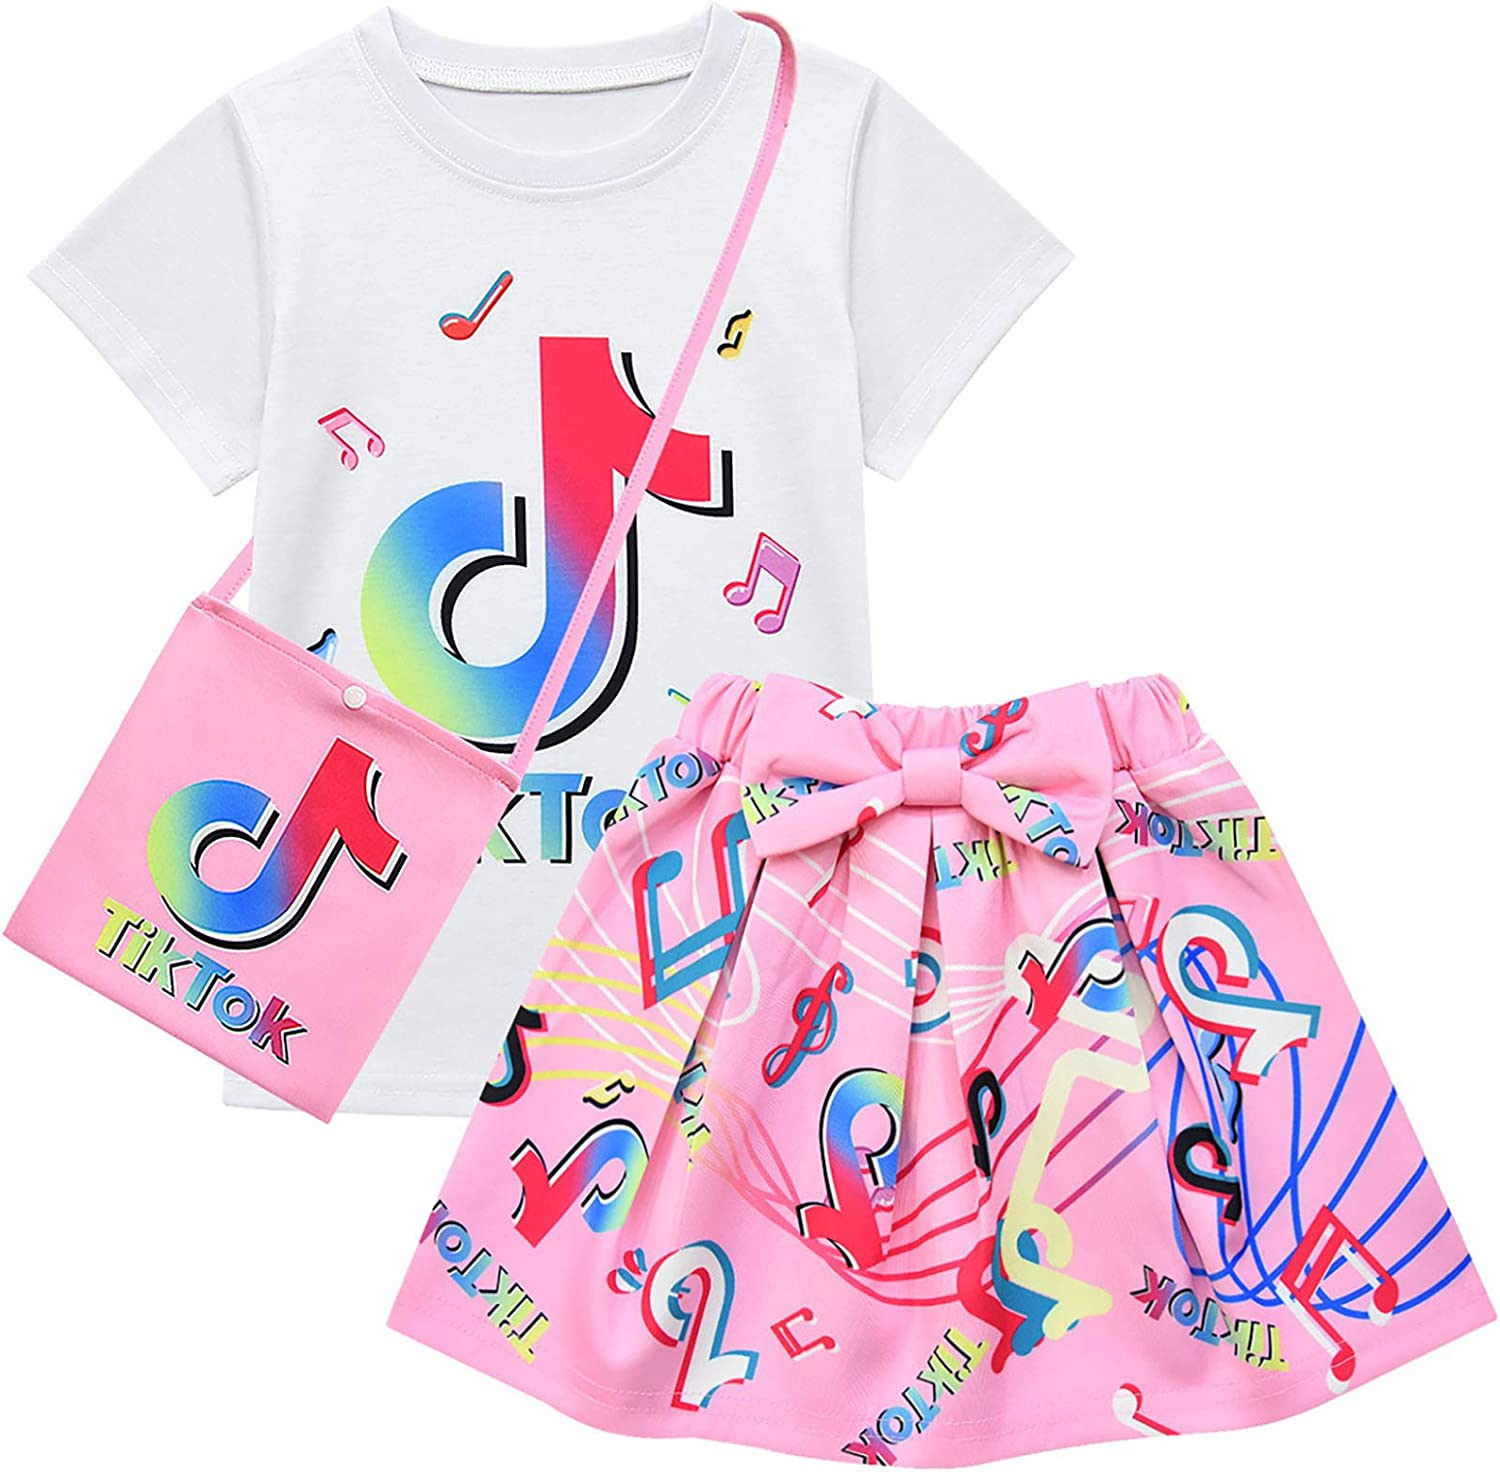 Buy 3pcs Tik Tok Girl Skirt Sets T Shirt Top Bowknot Skirt With Bag Outfits 3 4t Pink Online In Indonesia B092s2qght